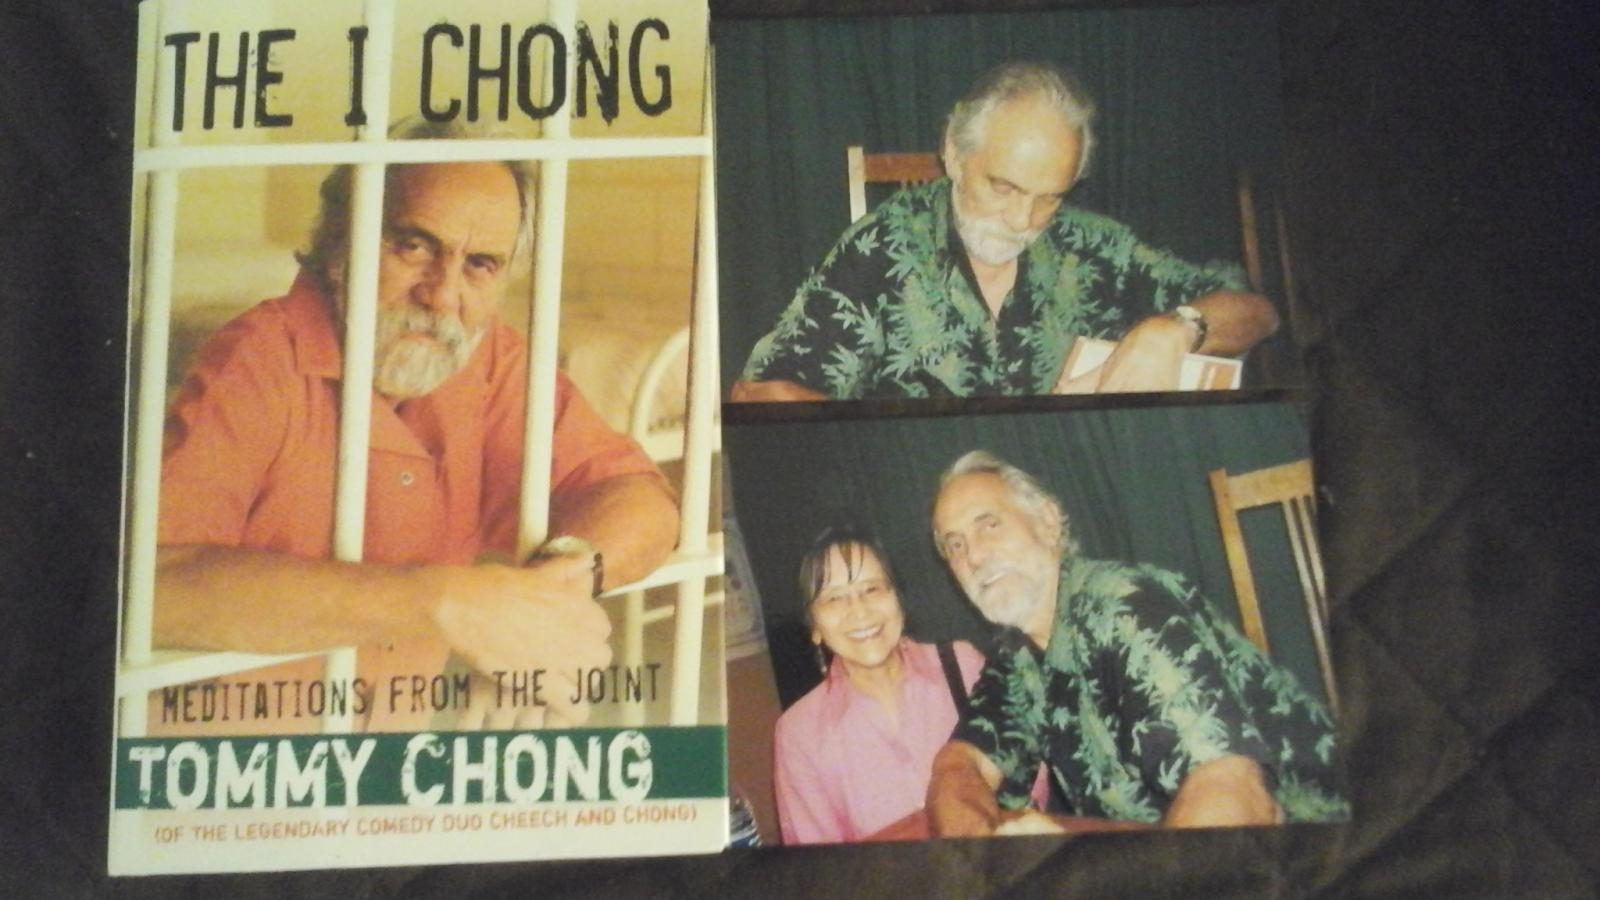 Photo of Doris with Tommy Chong